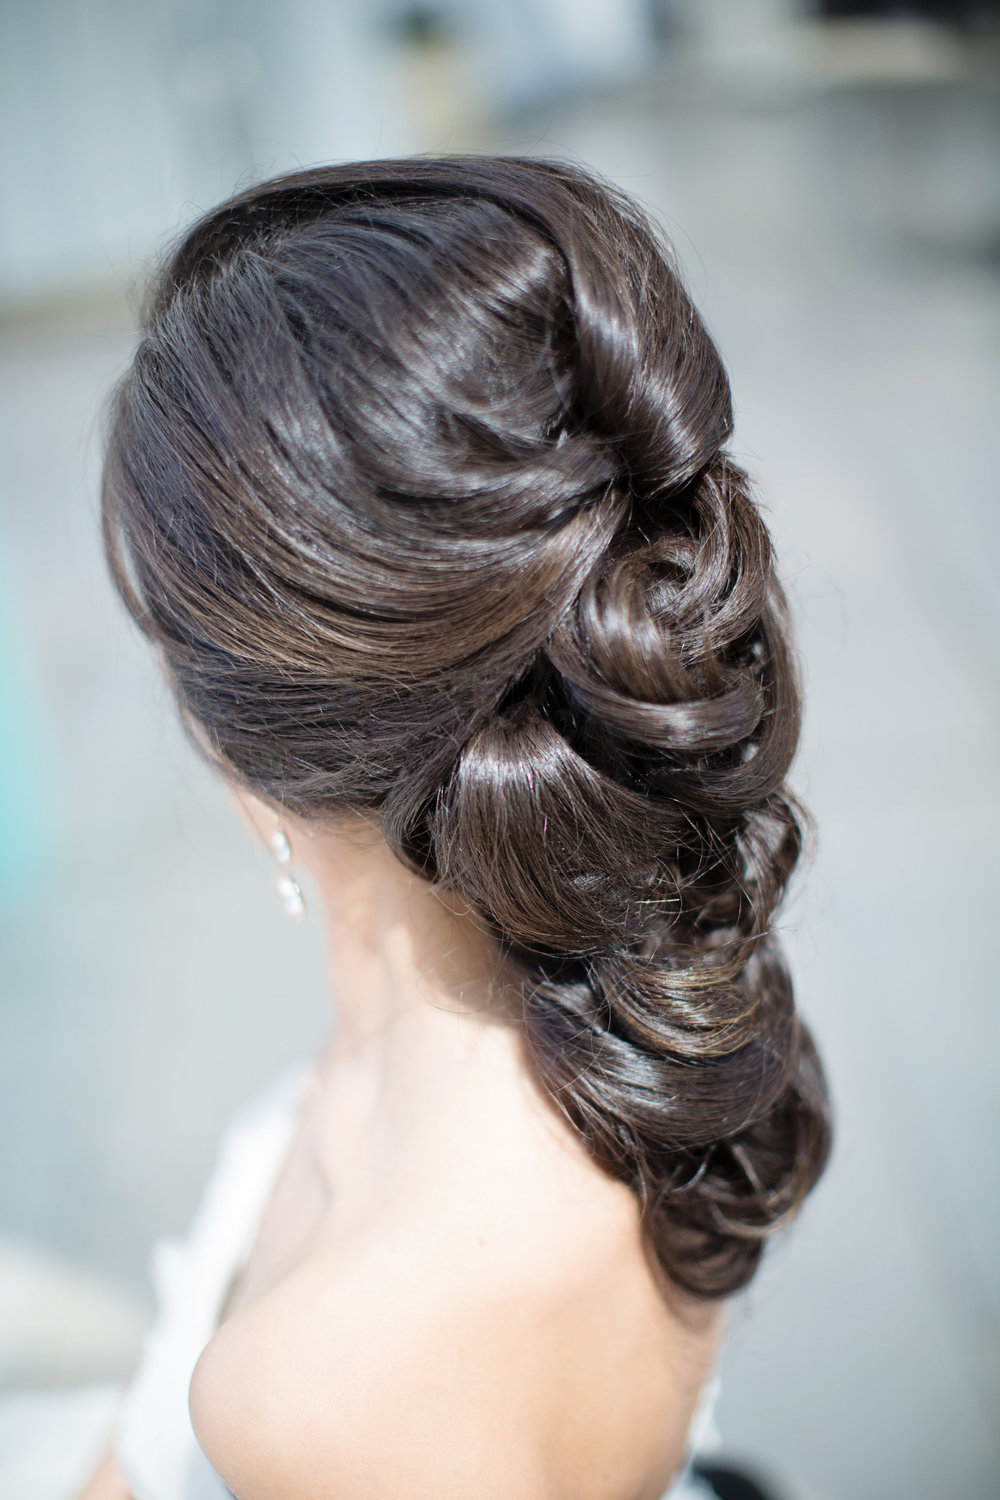 g-michael-salon-shoot-052914-bride-hair.jpg